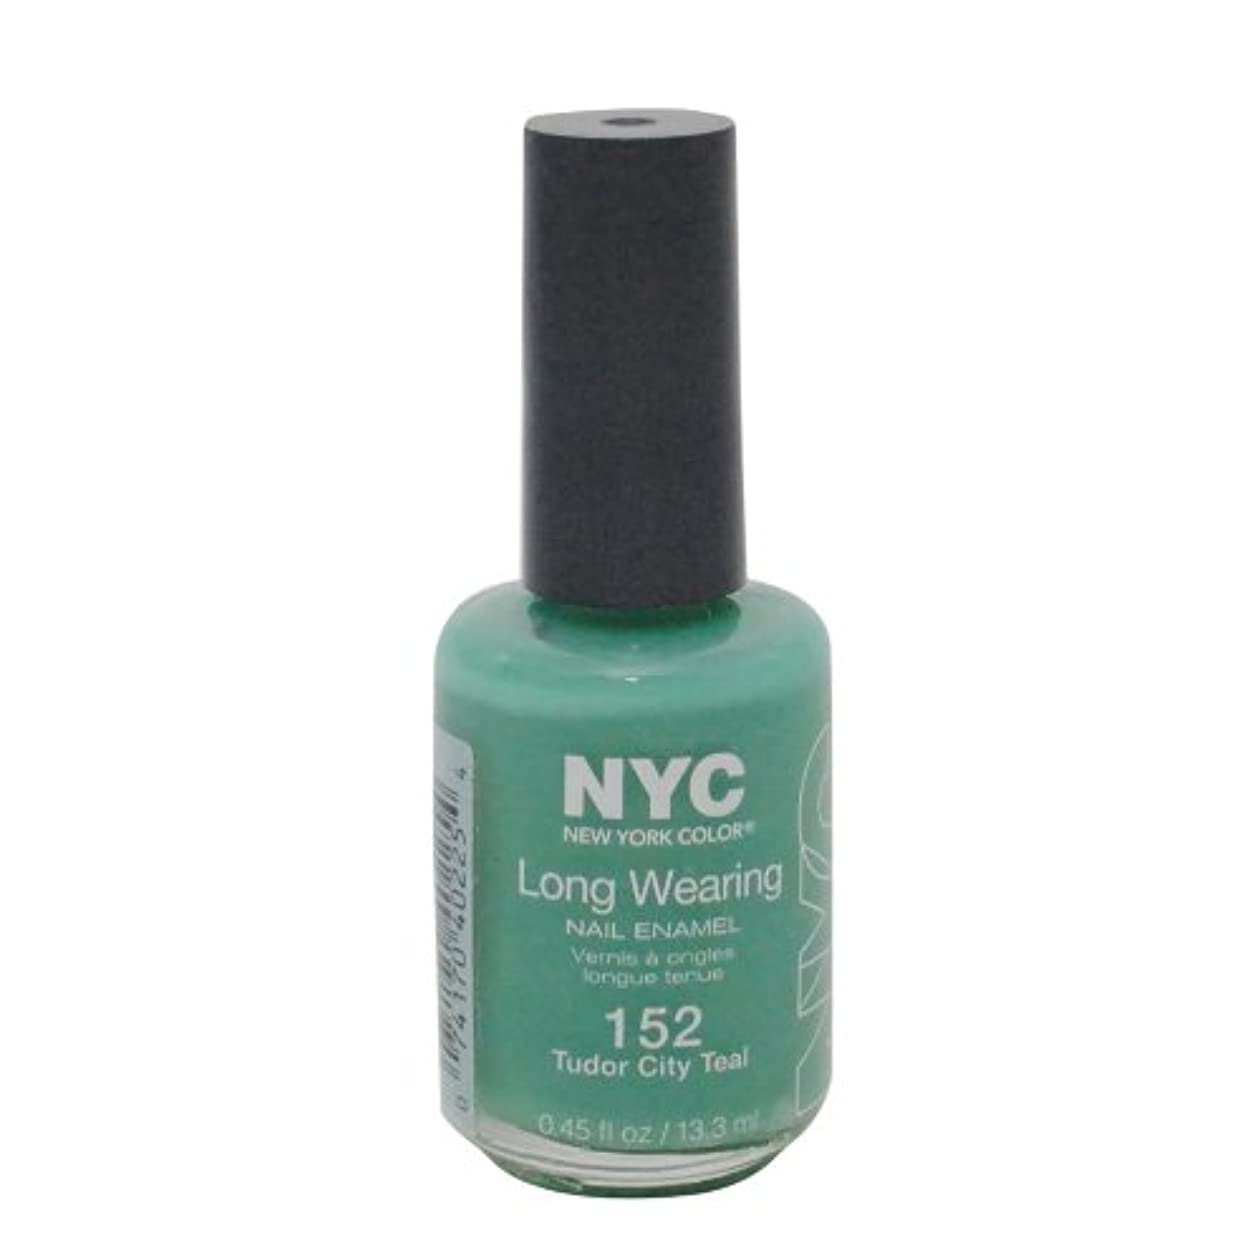 NYC Long Wearing Nail Enamel - Tudor City Teal by NYC New York Color